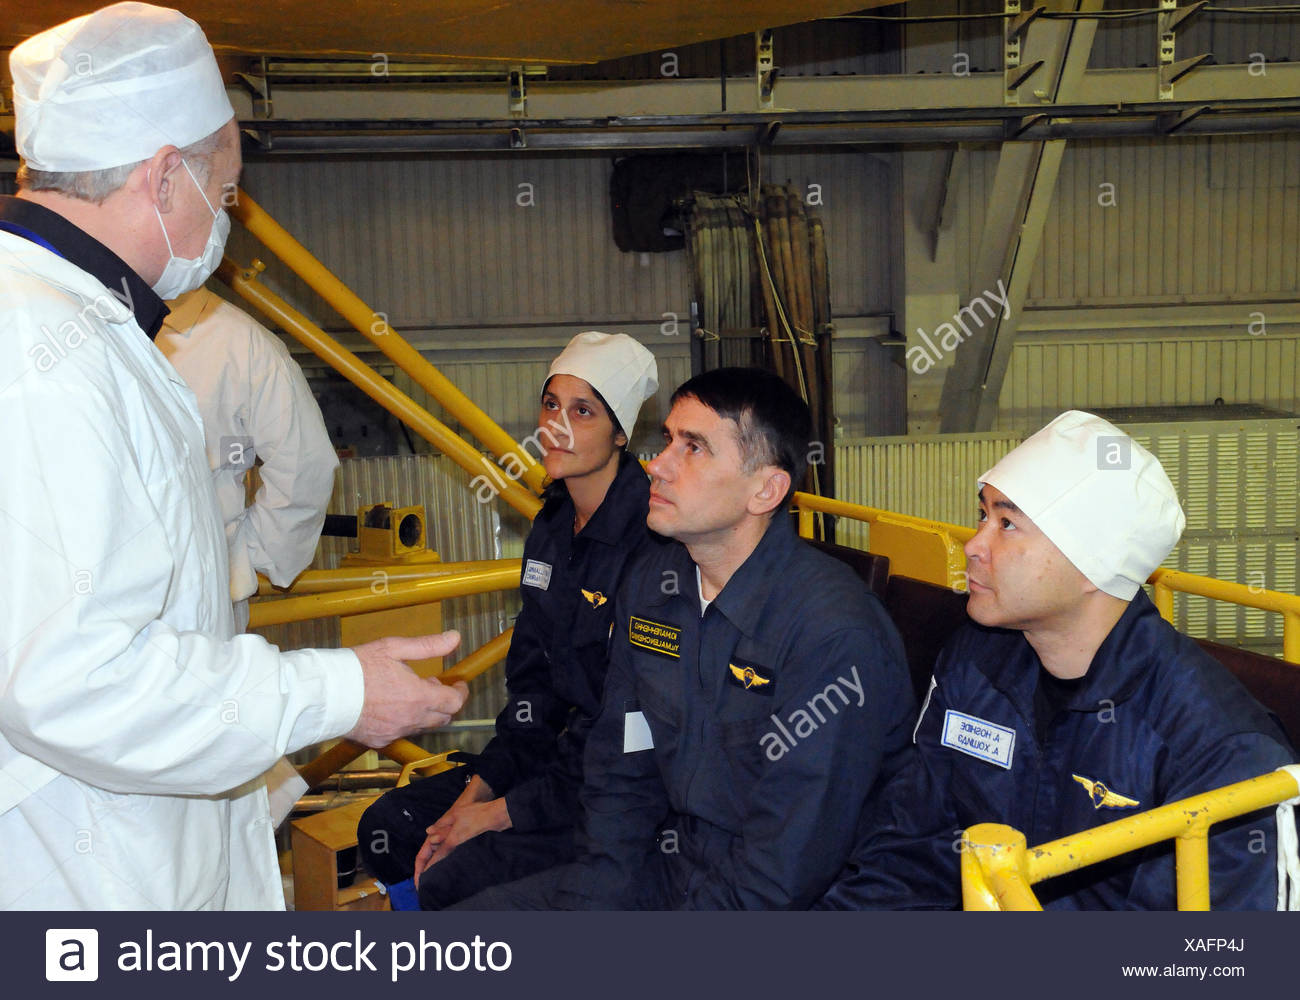 Astronauts Before Fit Check - Stock Image